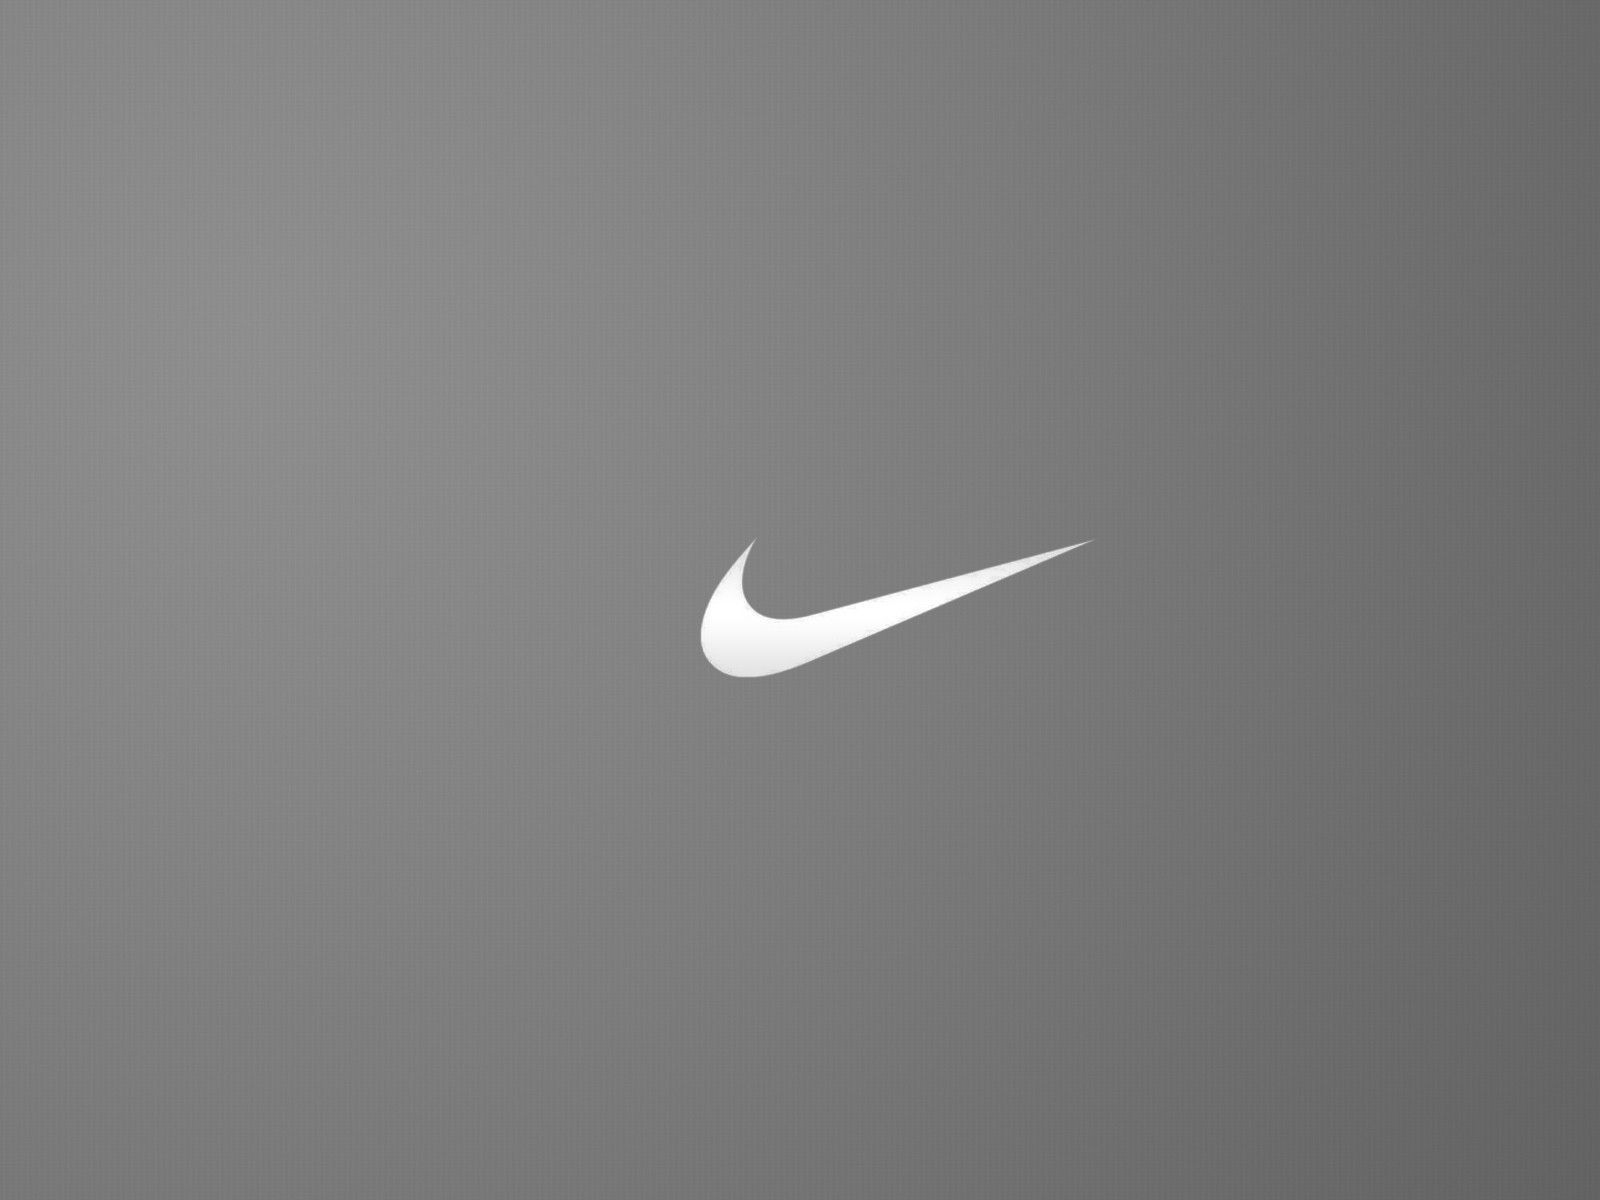 undefined nike wallpaper hd 44 wallpapers adorable wallpapers